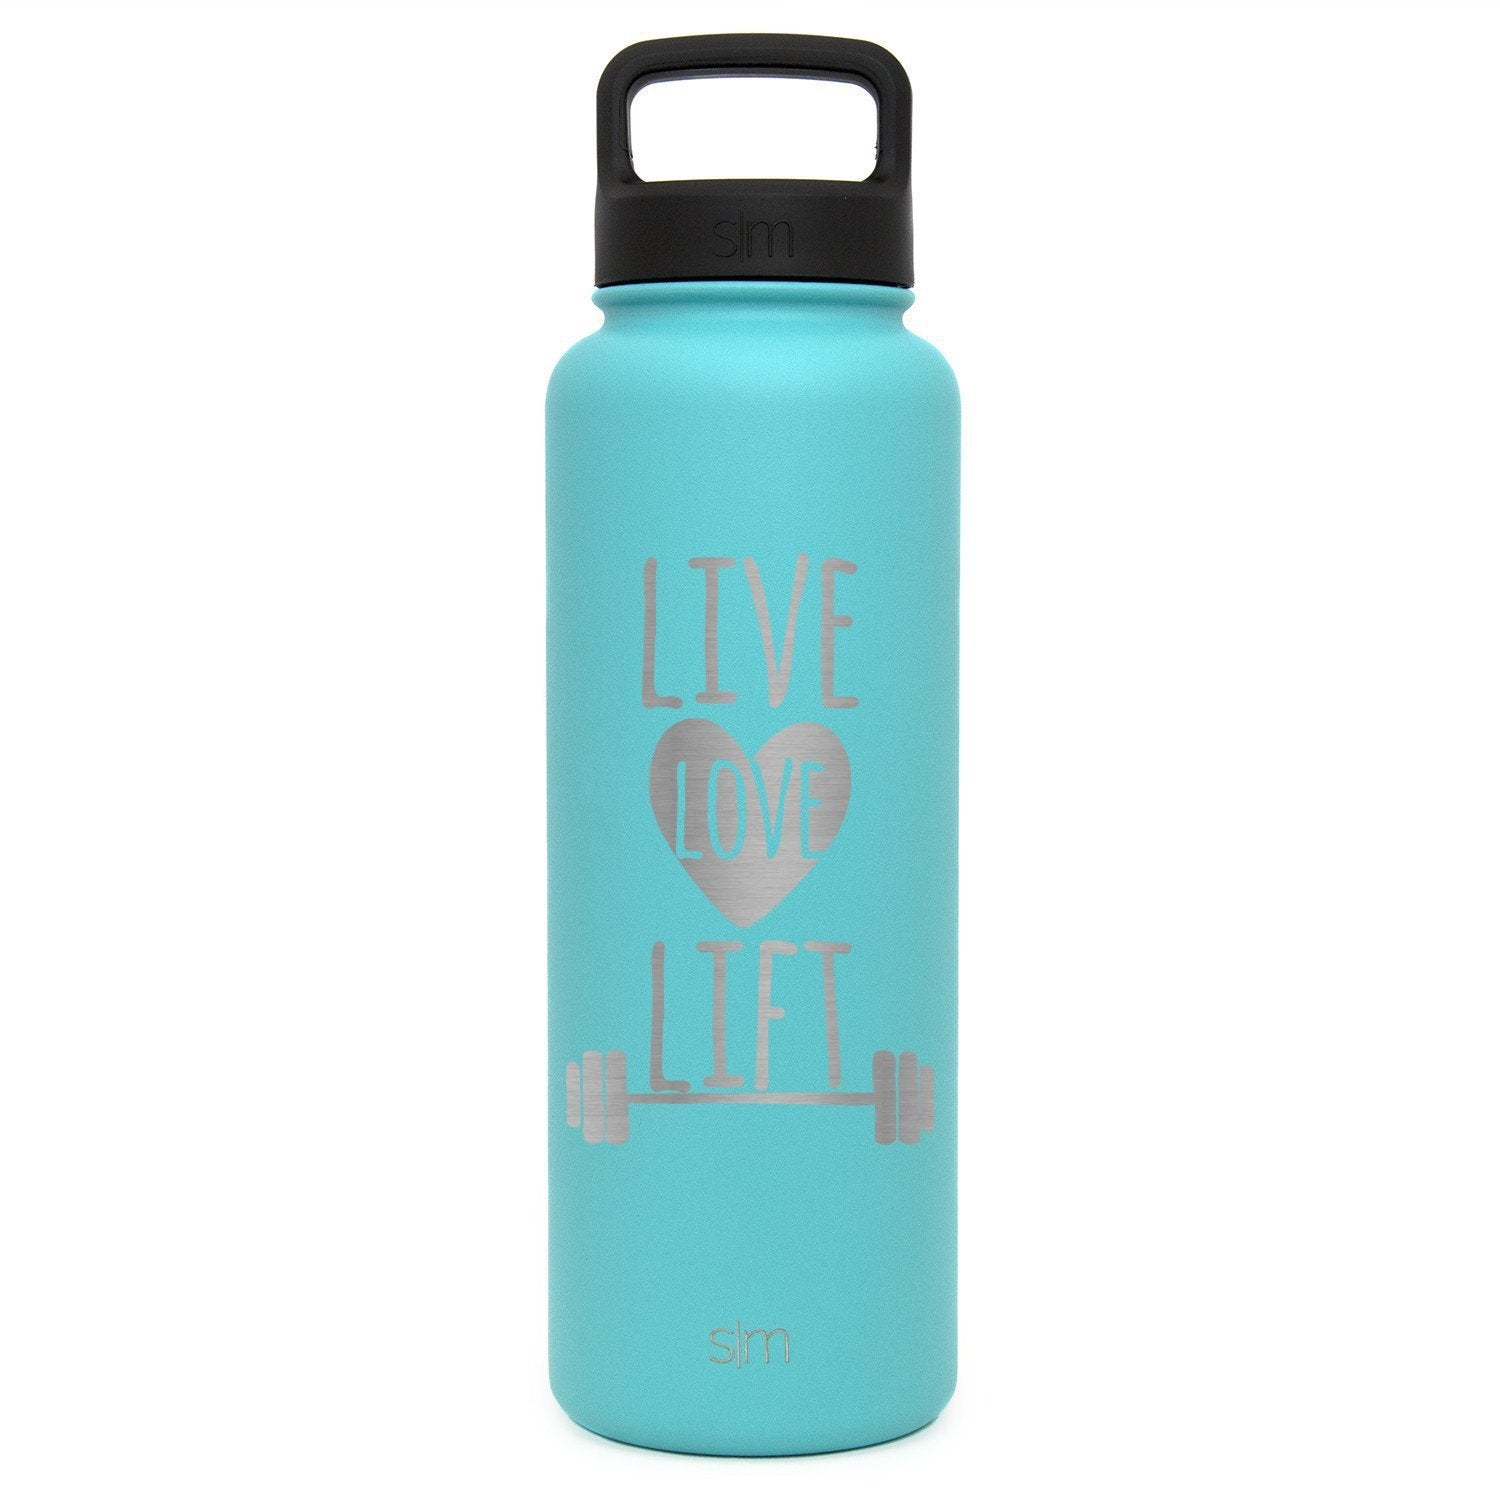 Premium Water Bottle, Live Love Lift Design, Extra Lid, Wide Mouth, Stainless Steel, Vacuum Insulated, Double Walled, Hot and Cold, 40 Ounce, Etched with Honor by Integrity Bottles (Caribbean Teal) by Integrity Bottles